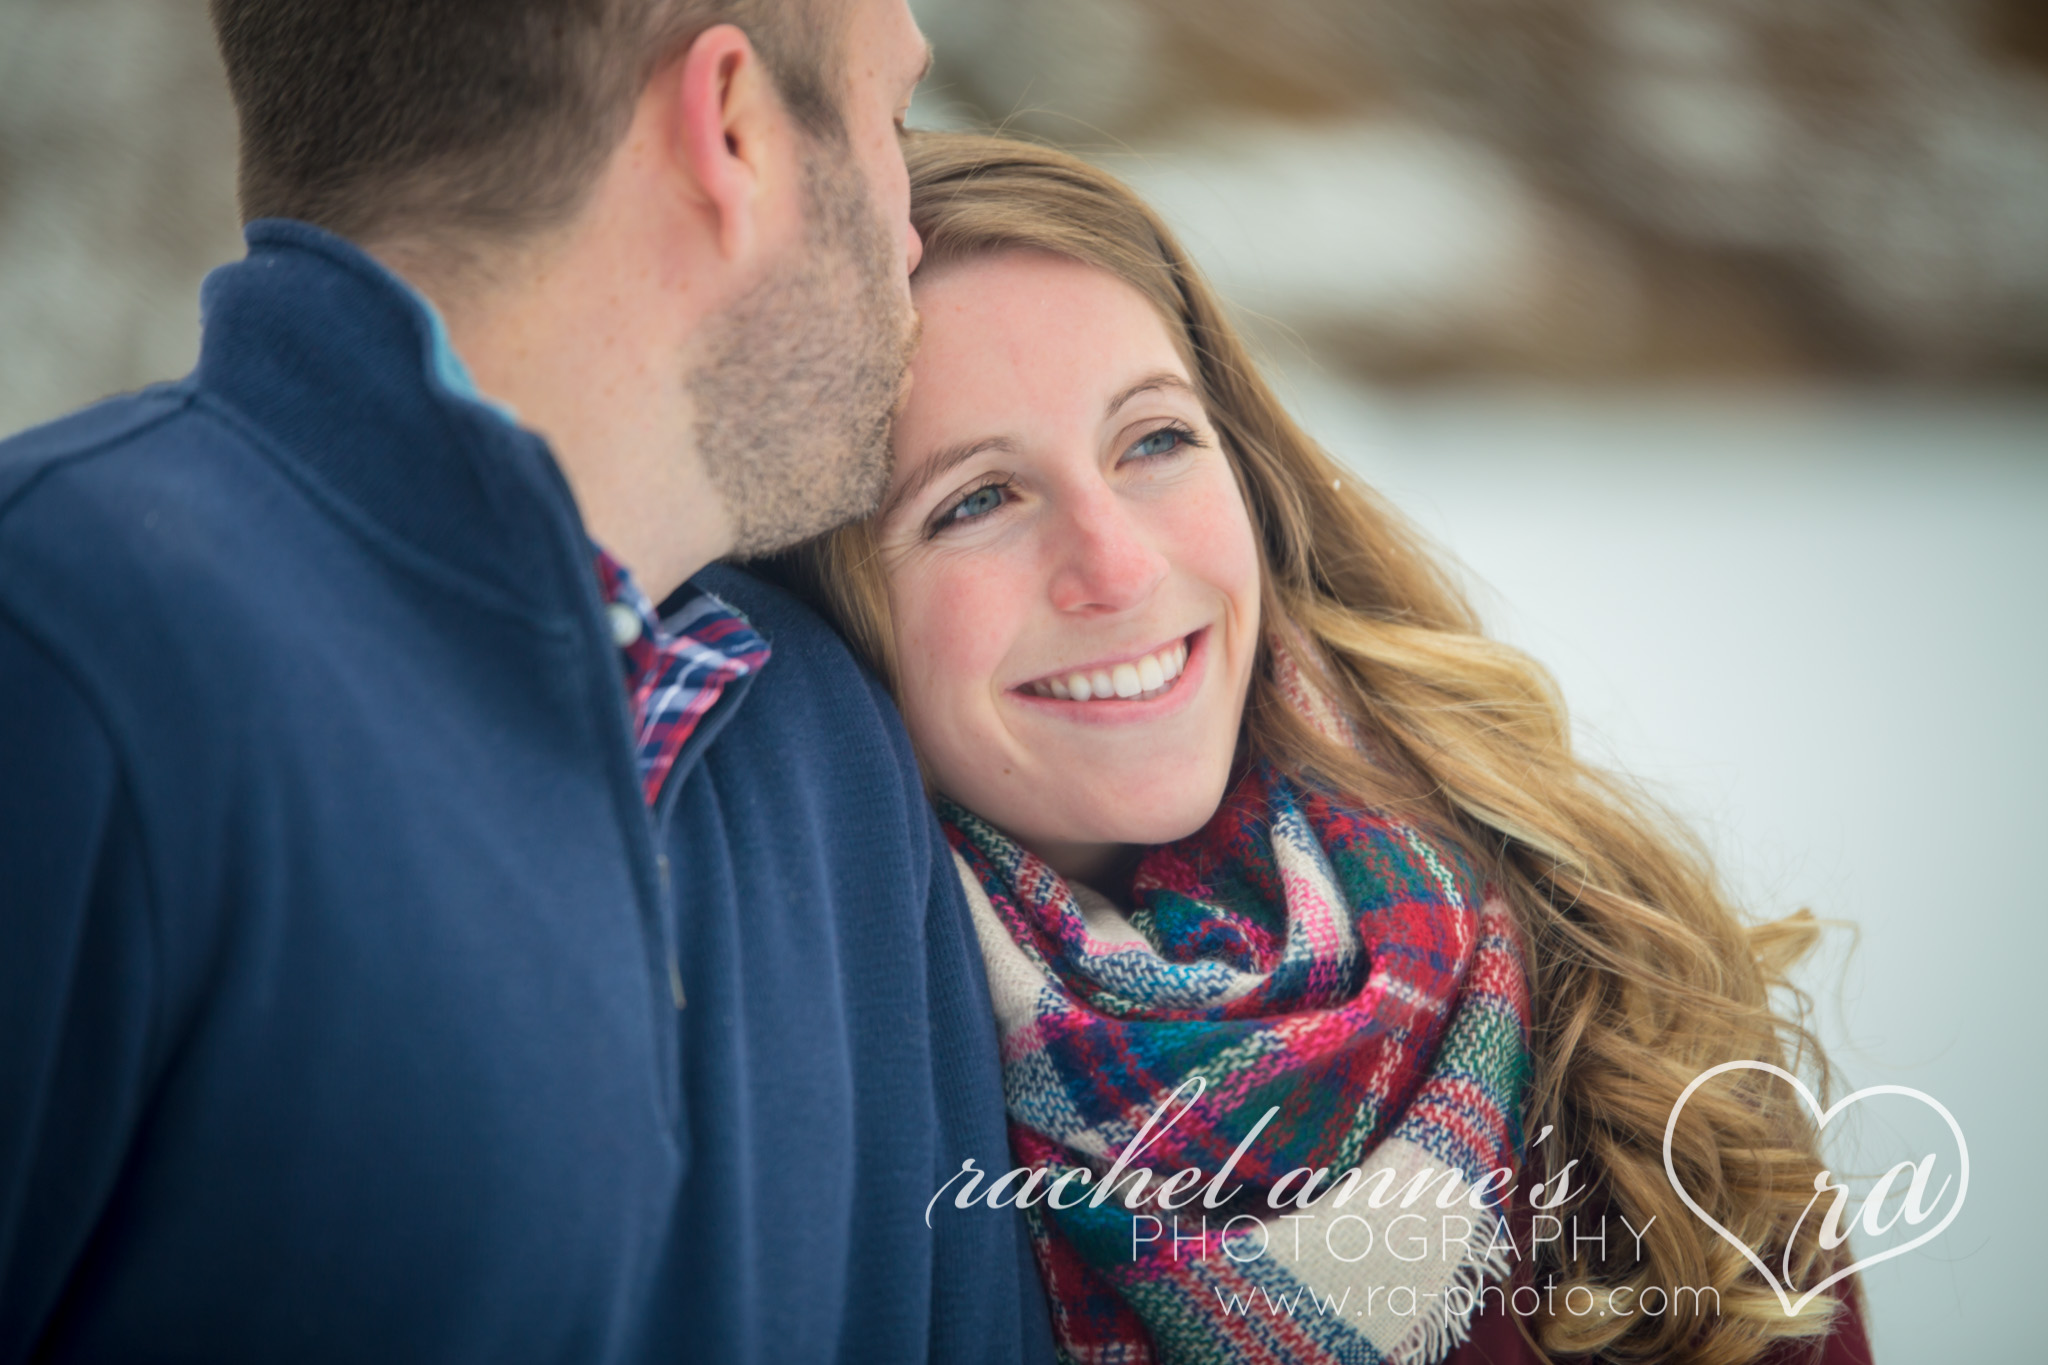 015-JKM-DUBOIS-PA-ENGAGEMENT-PHOTOGRAPHY.jpg